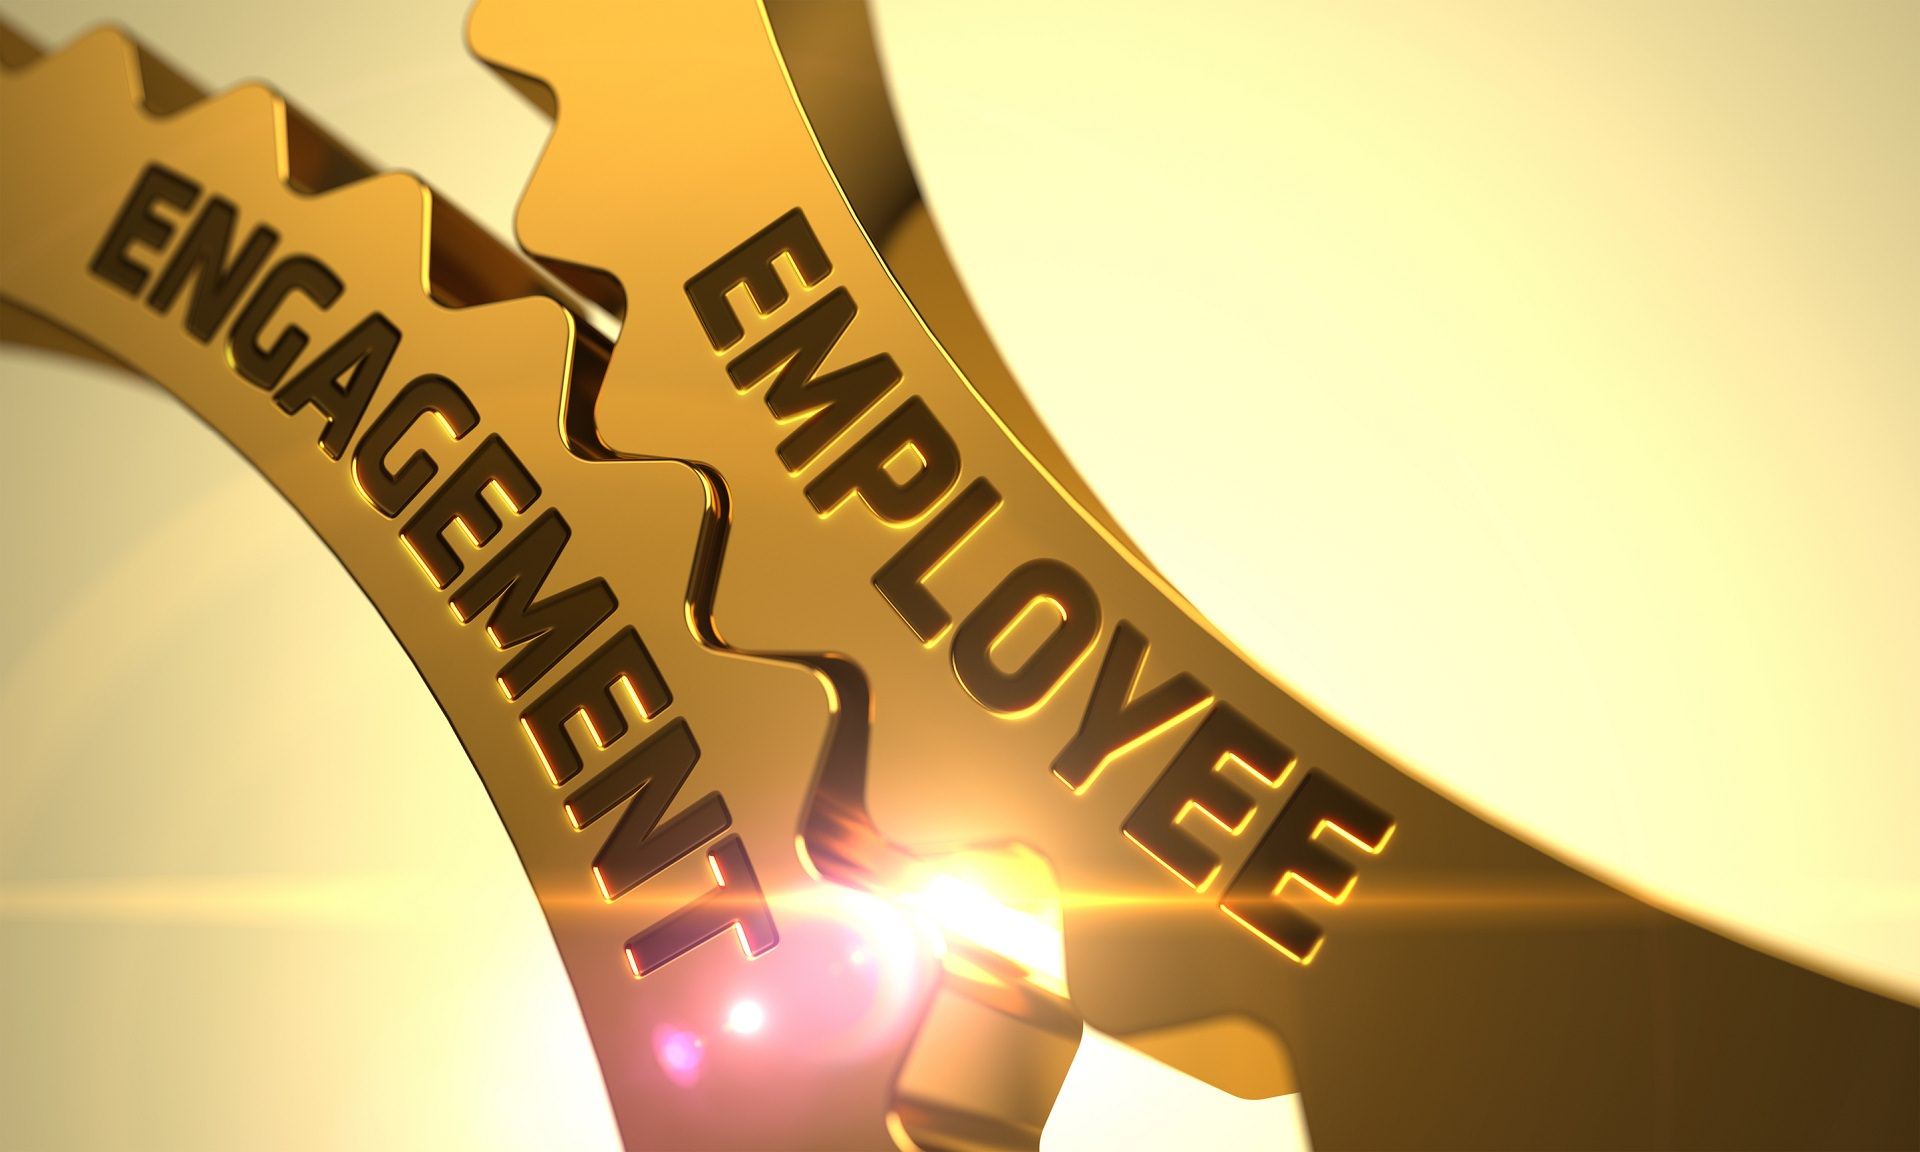 Employee Engagement on the Golden Gears. 3D.